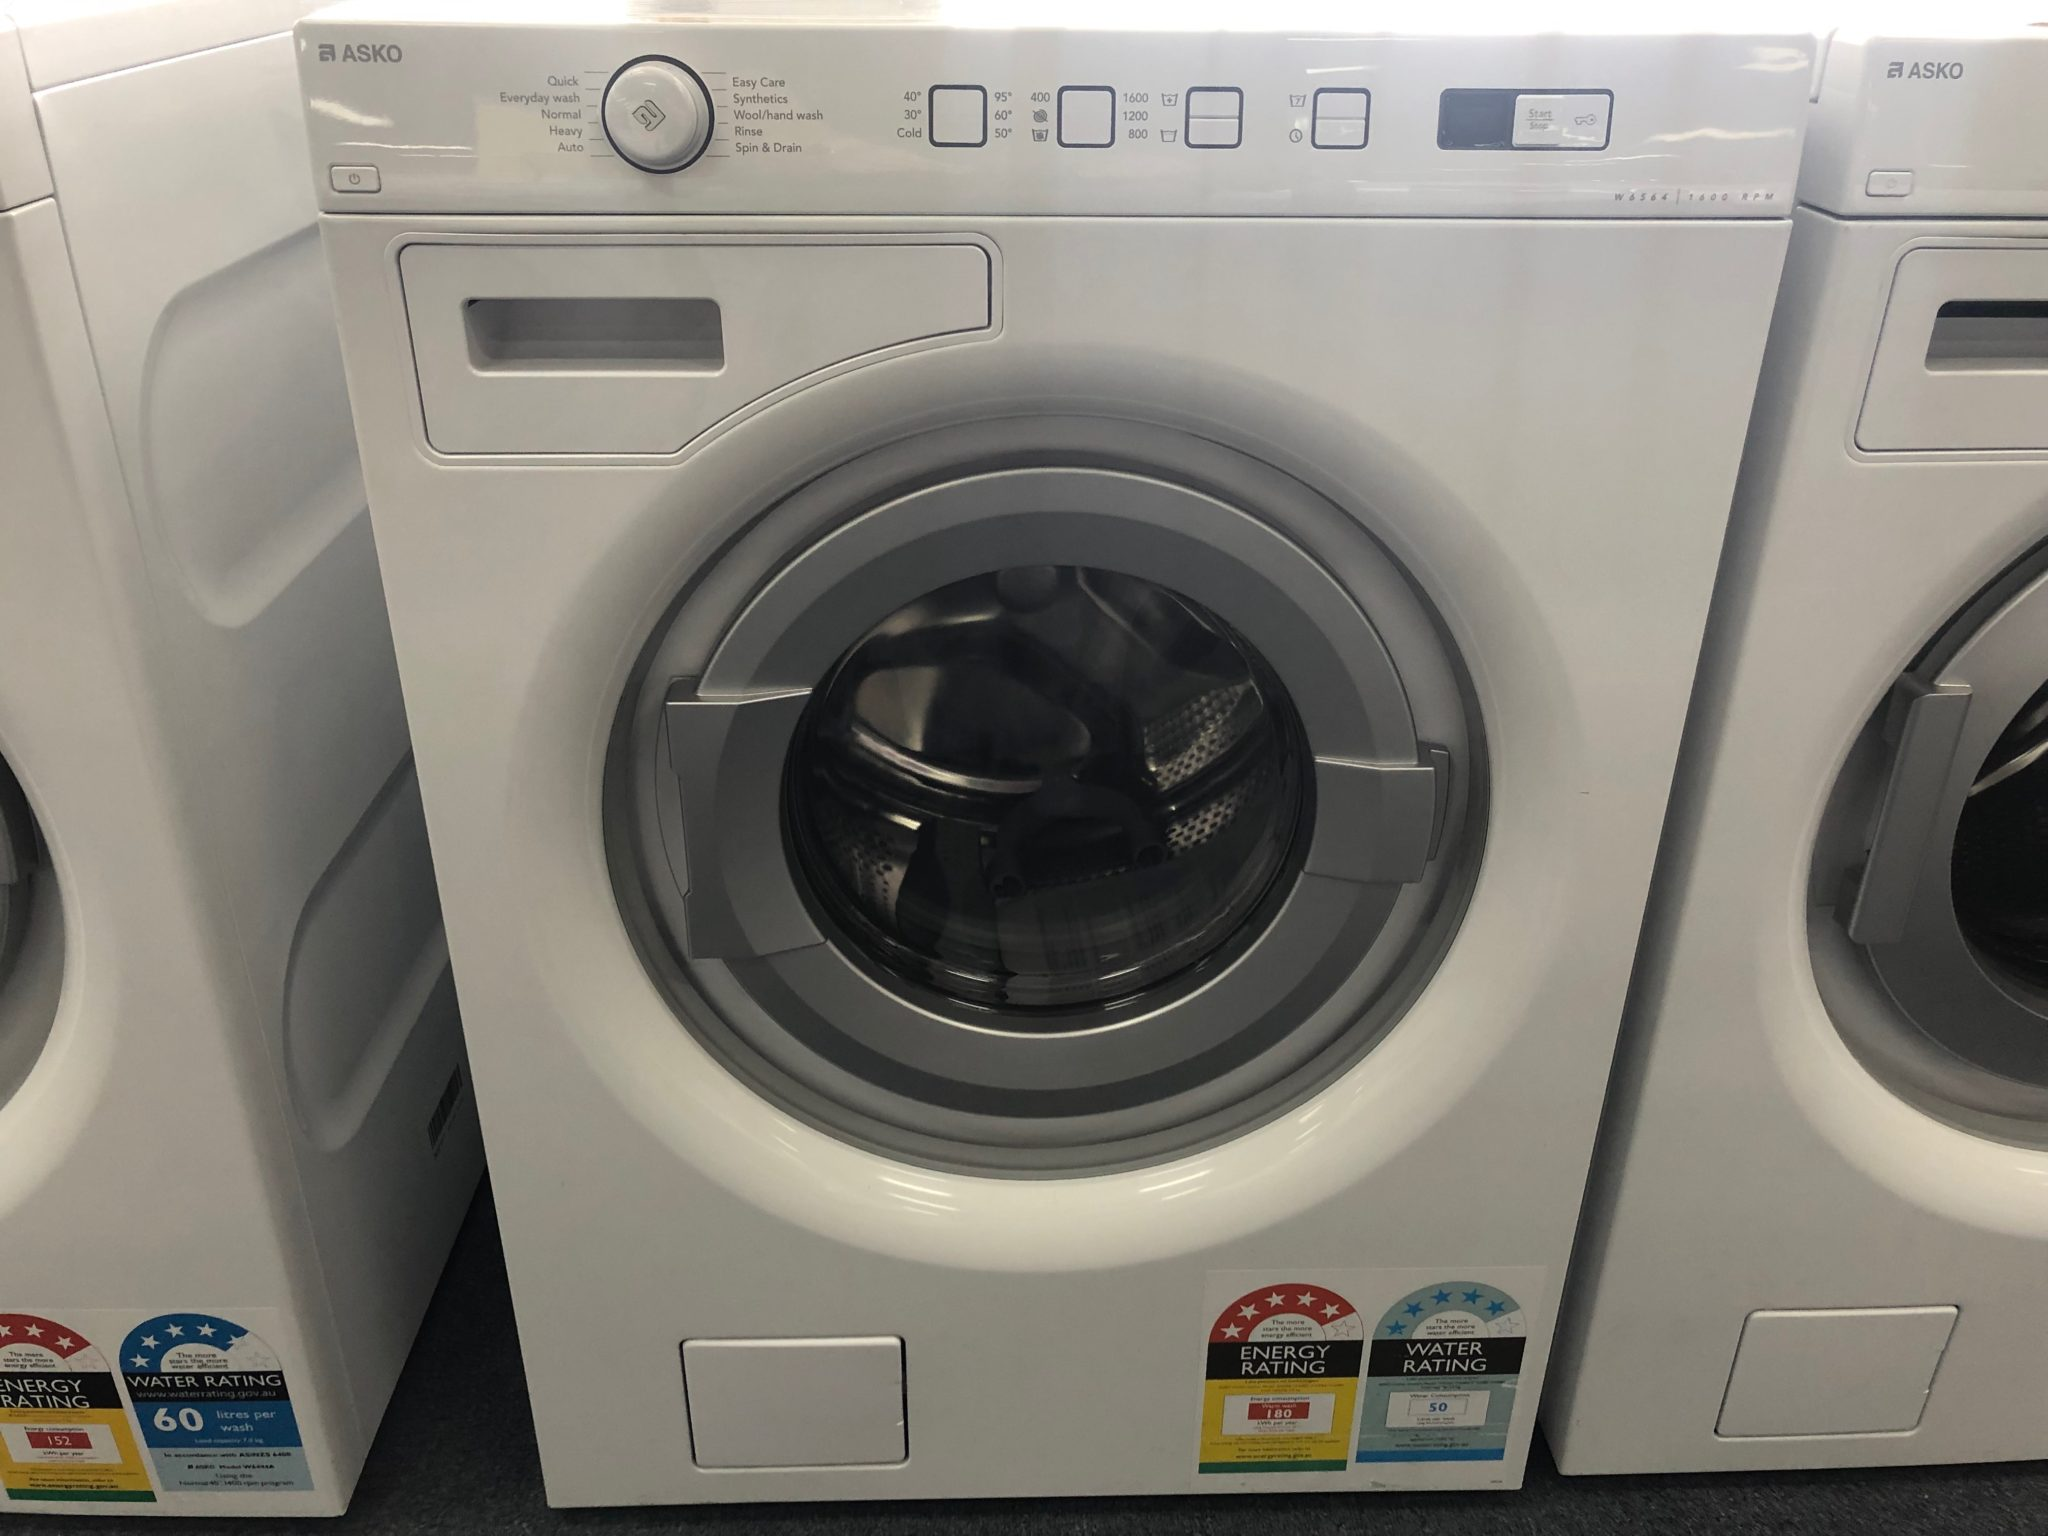 Tips On How To Move White Goods And Equipment Safely